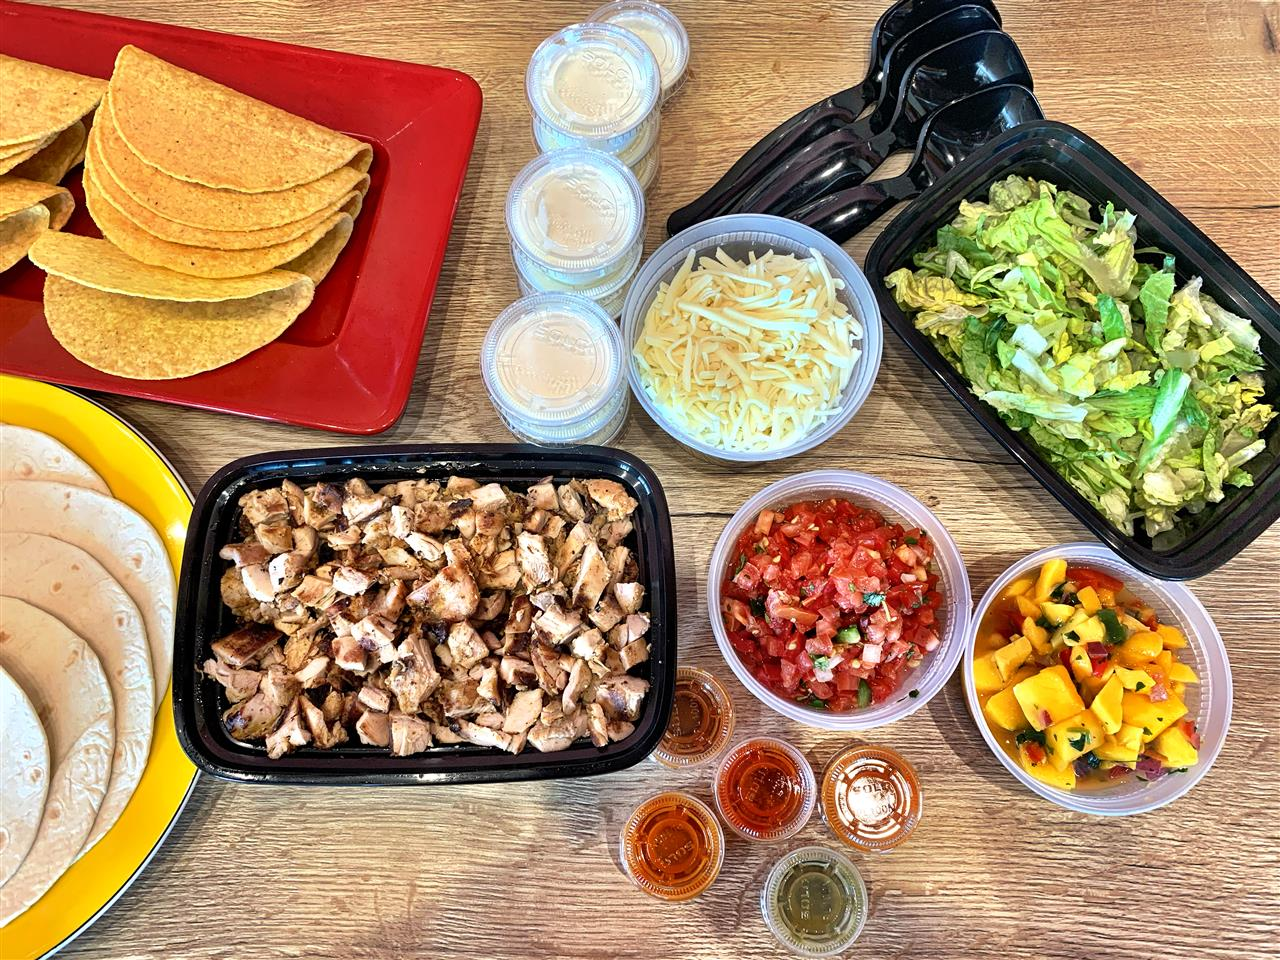 TACO PARTY - BUILD YOUR OWN 10 TACOS